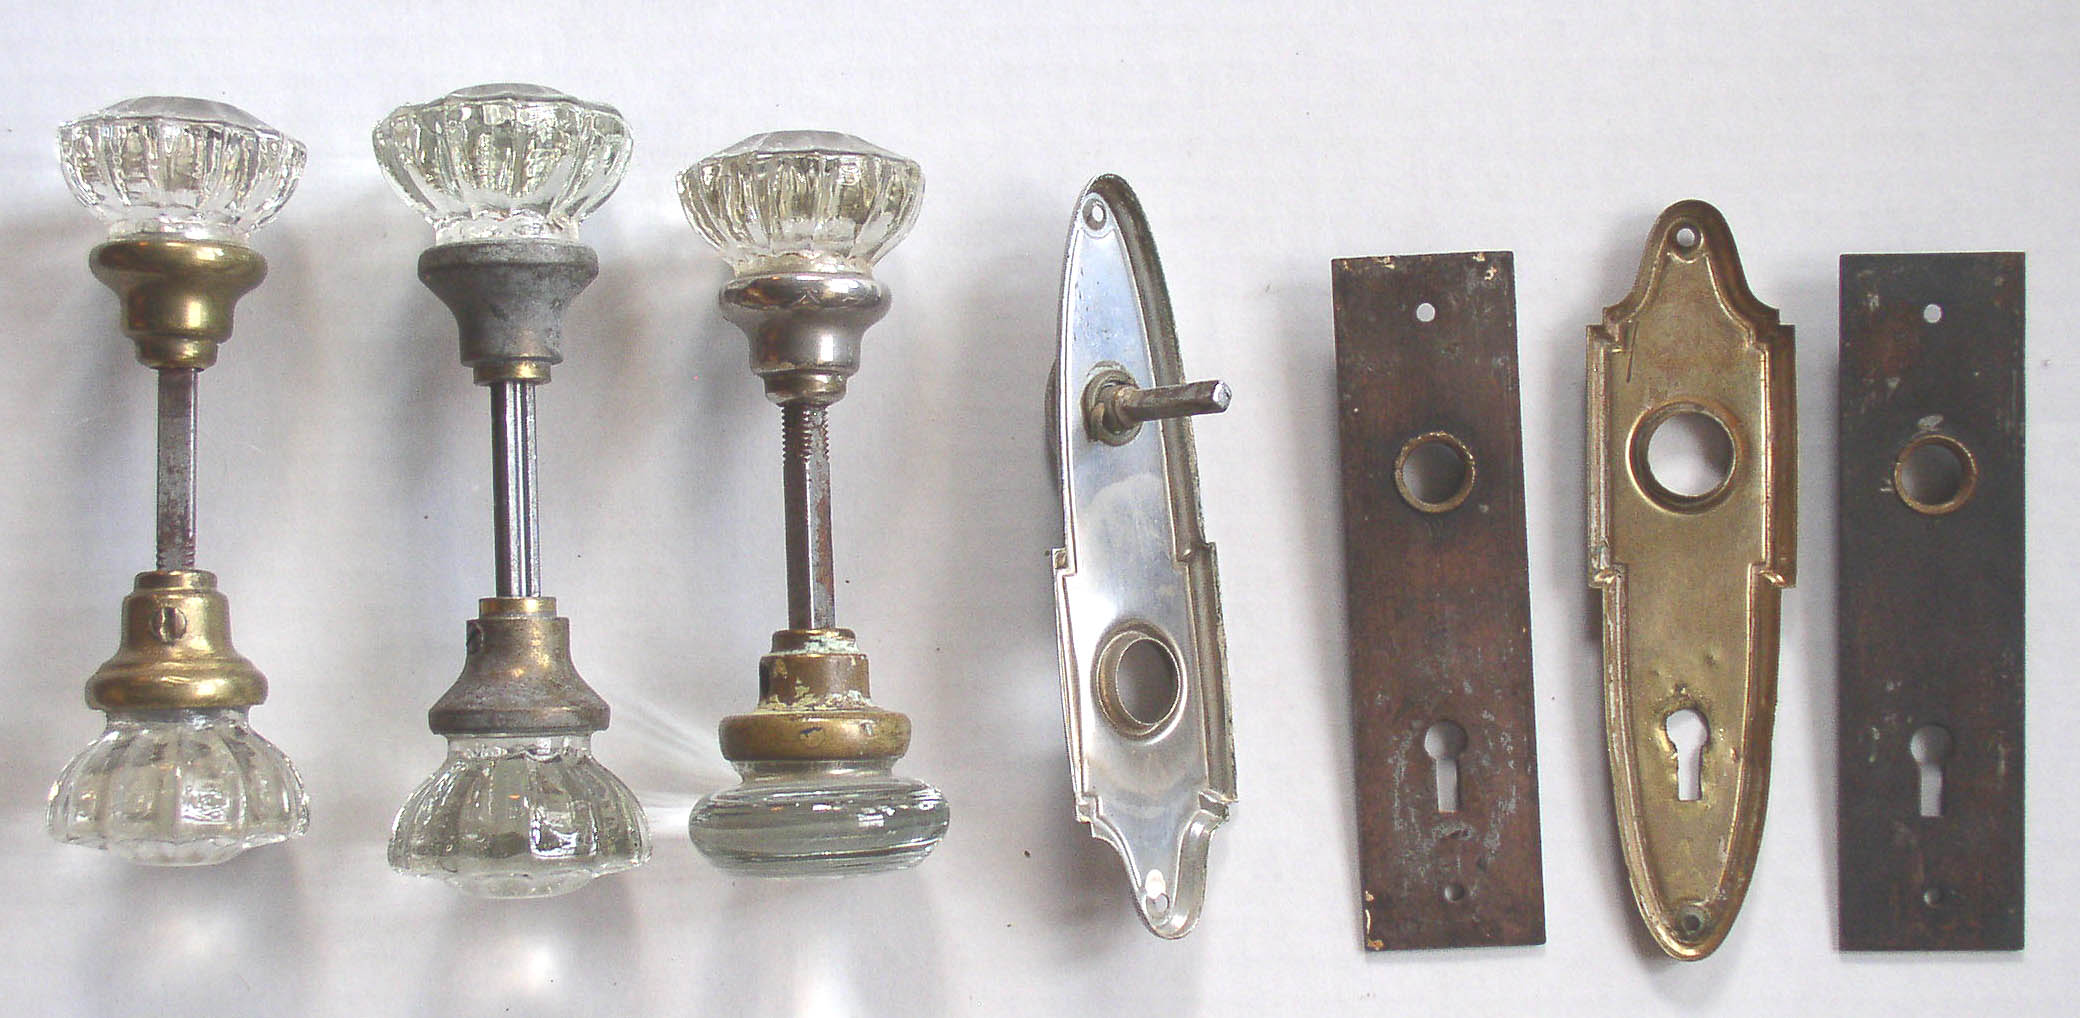 glass doors knobs antique photo door old